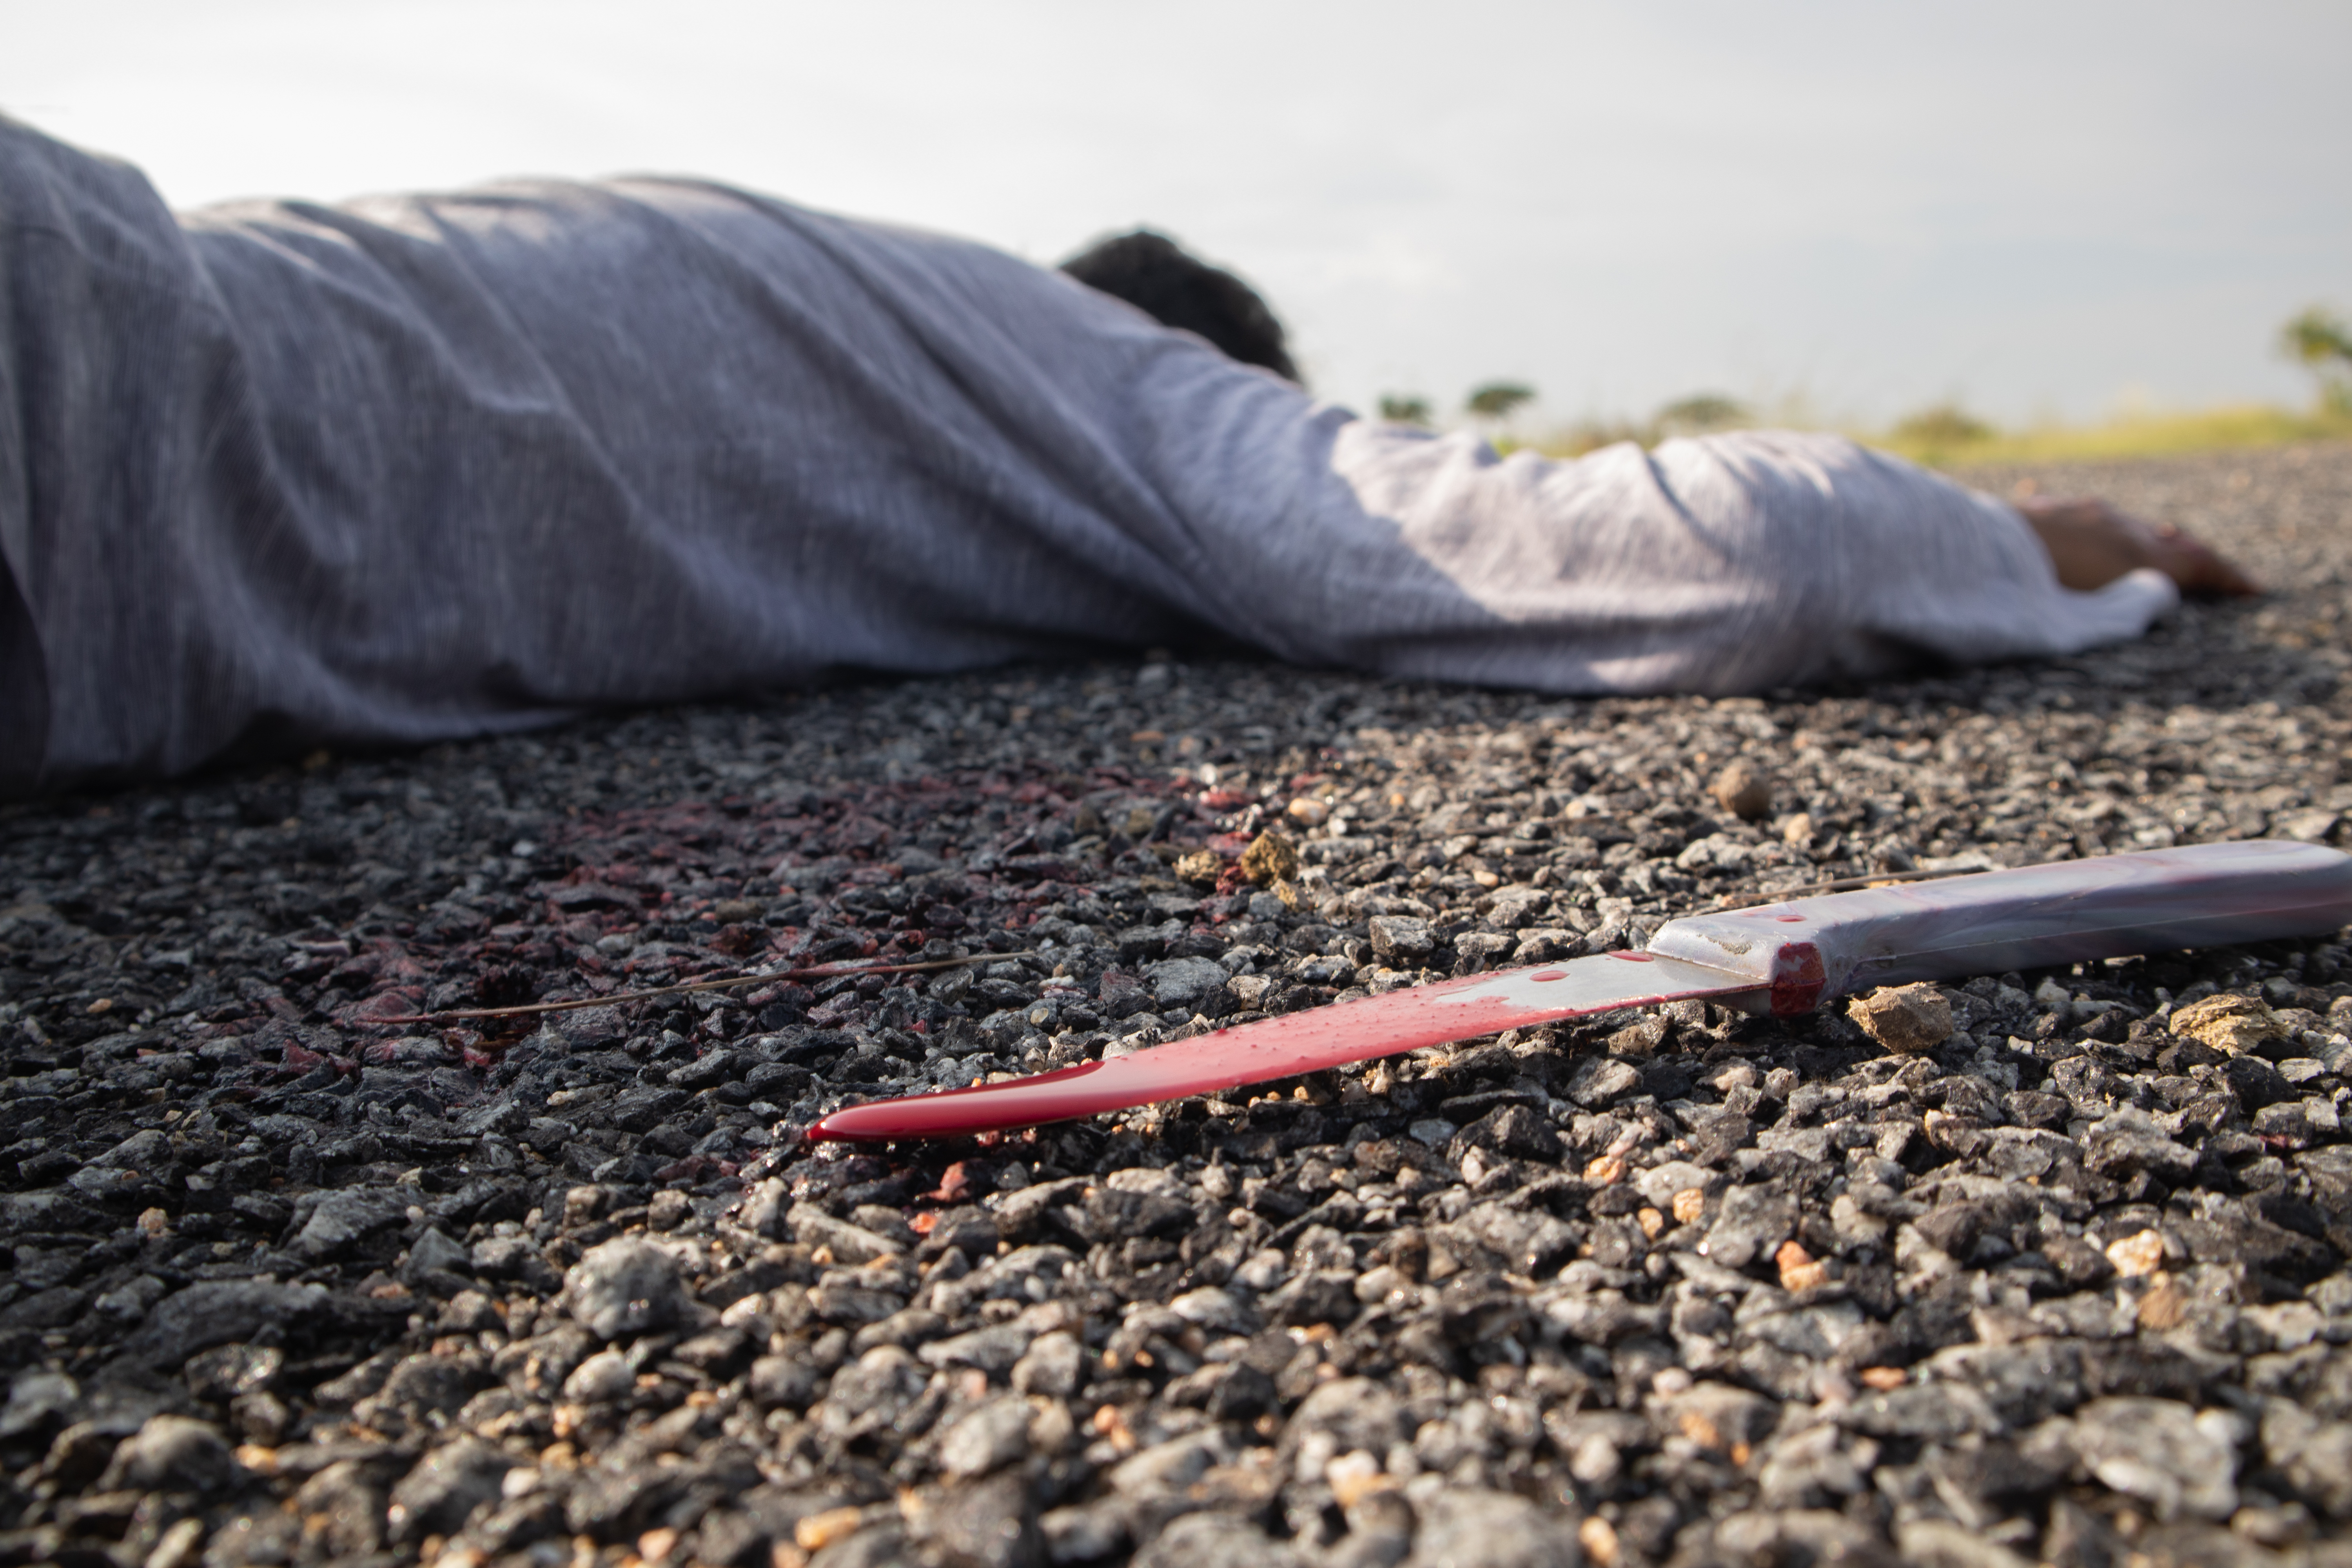 Some residents claimed that those who killed Qureshi by hitting him with sticks were criminals who had been drinking nearby.